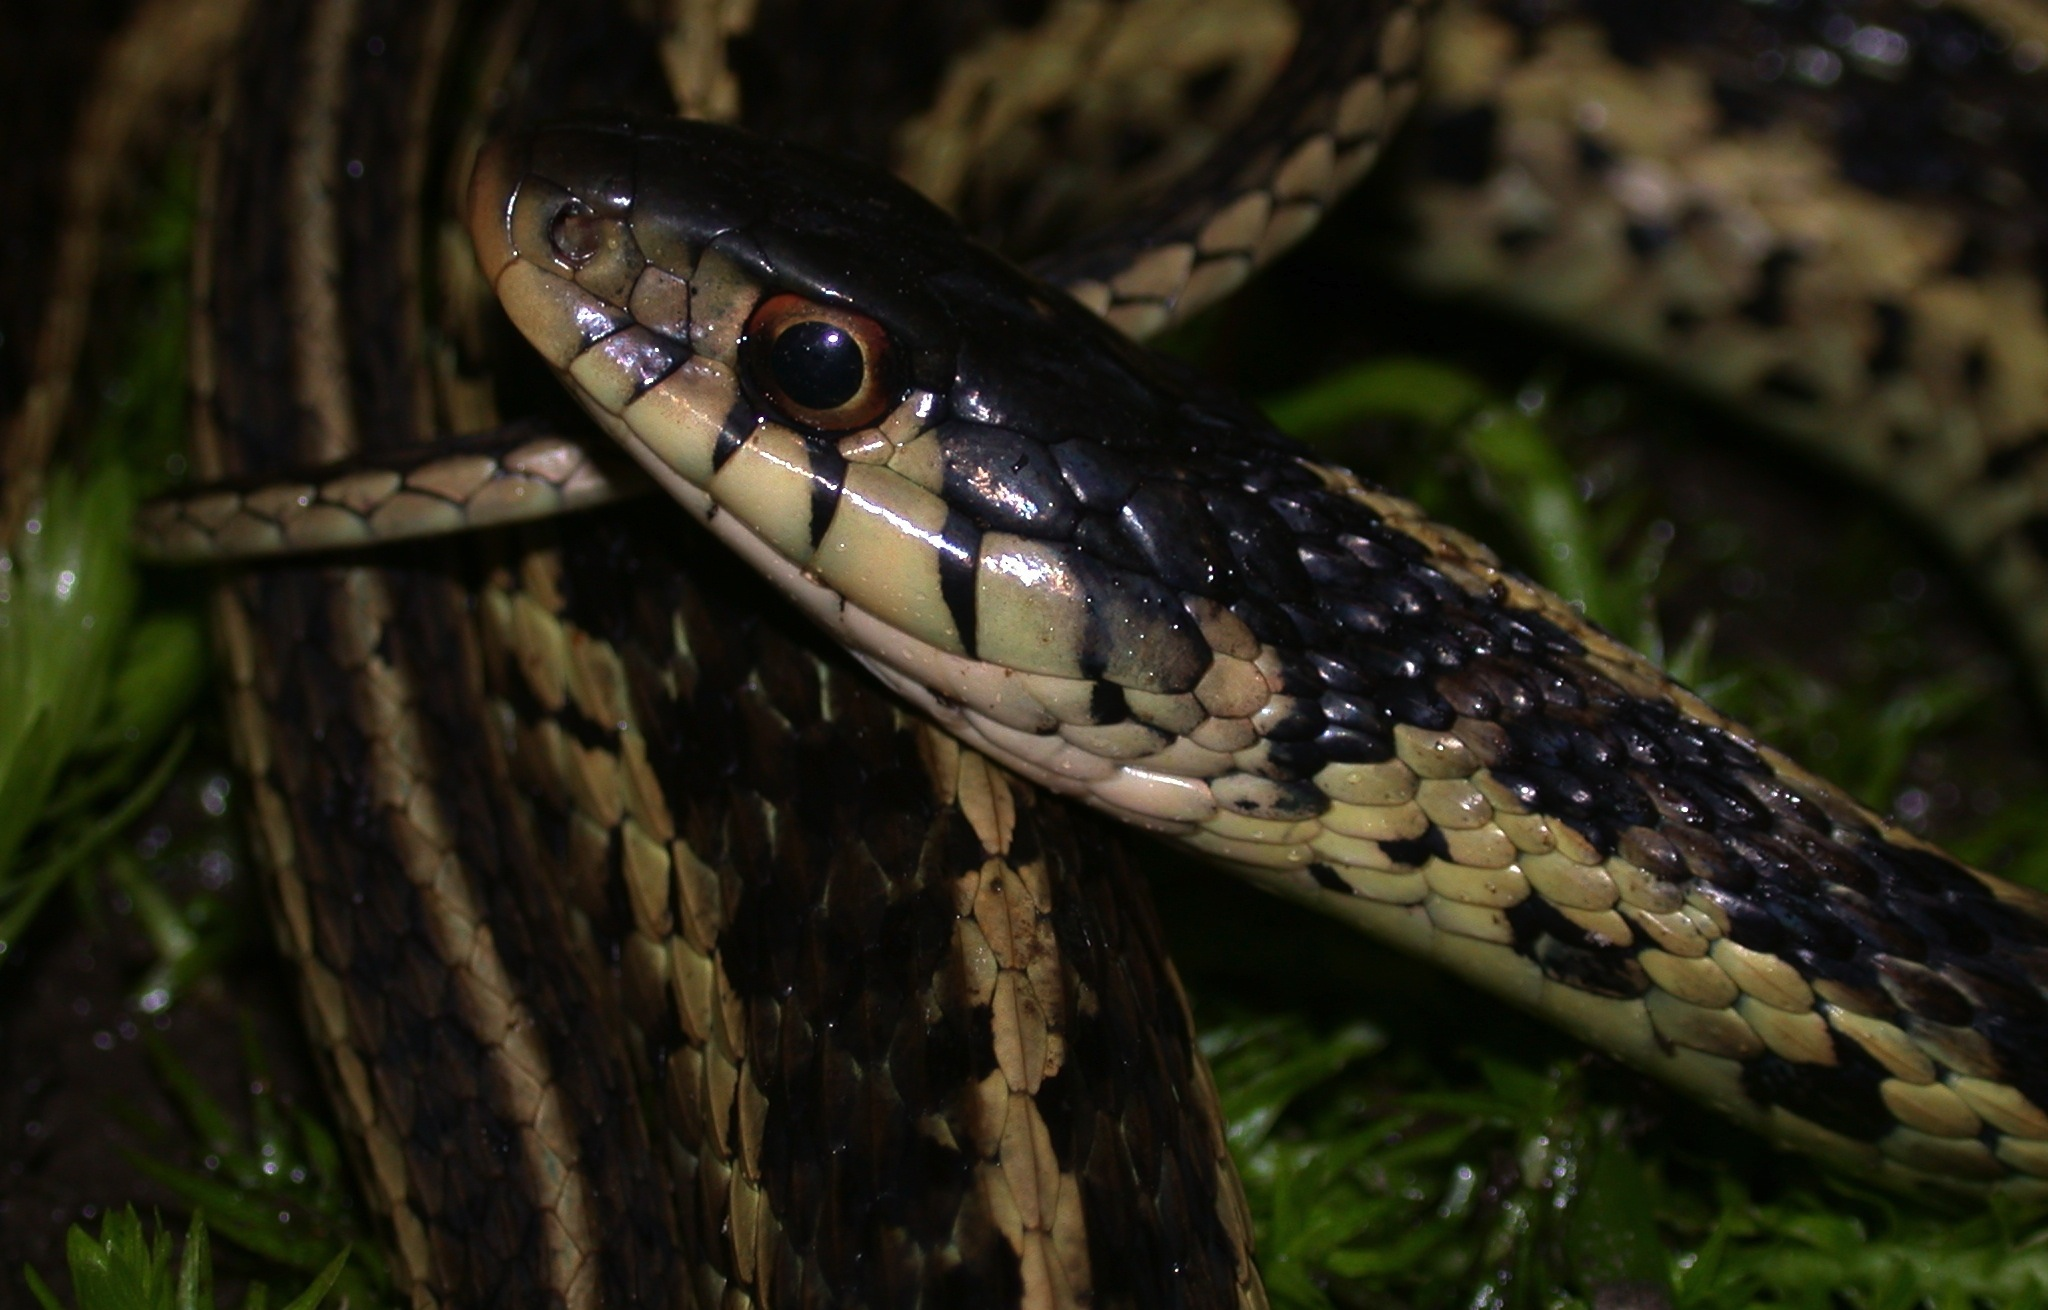 Garter snakes have labial bars Photo by JD Willson